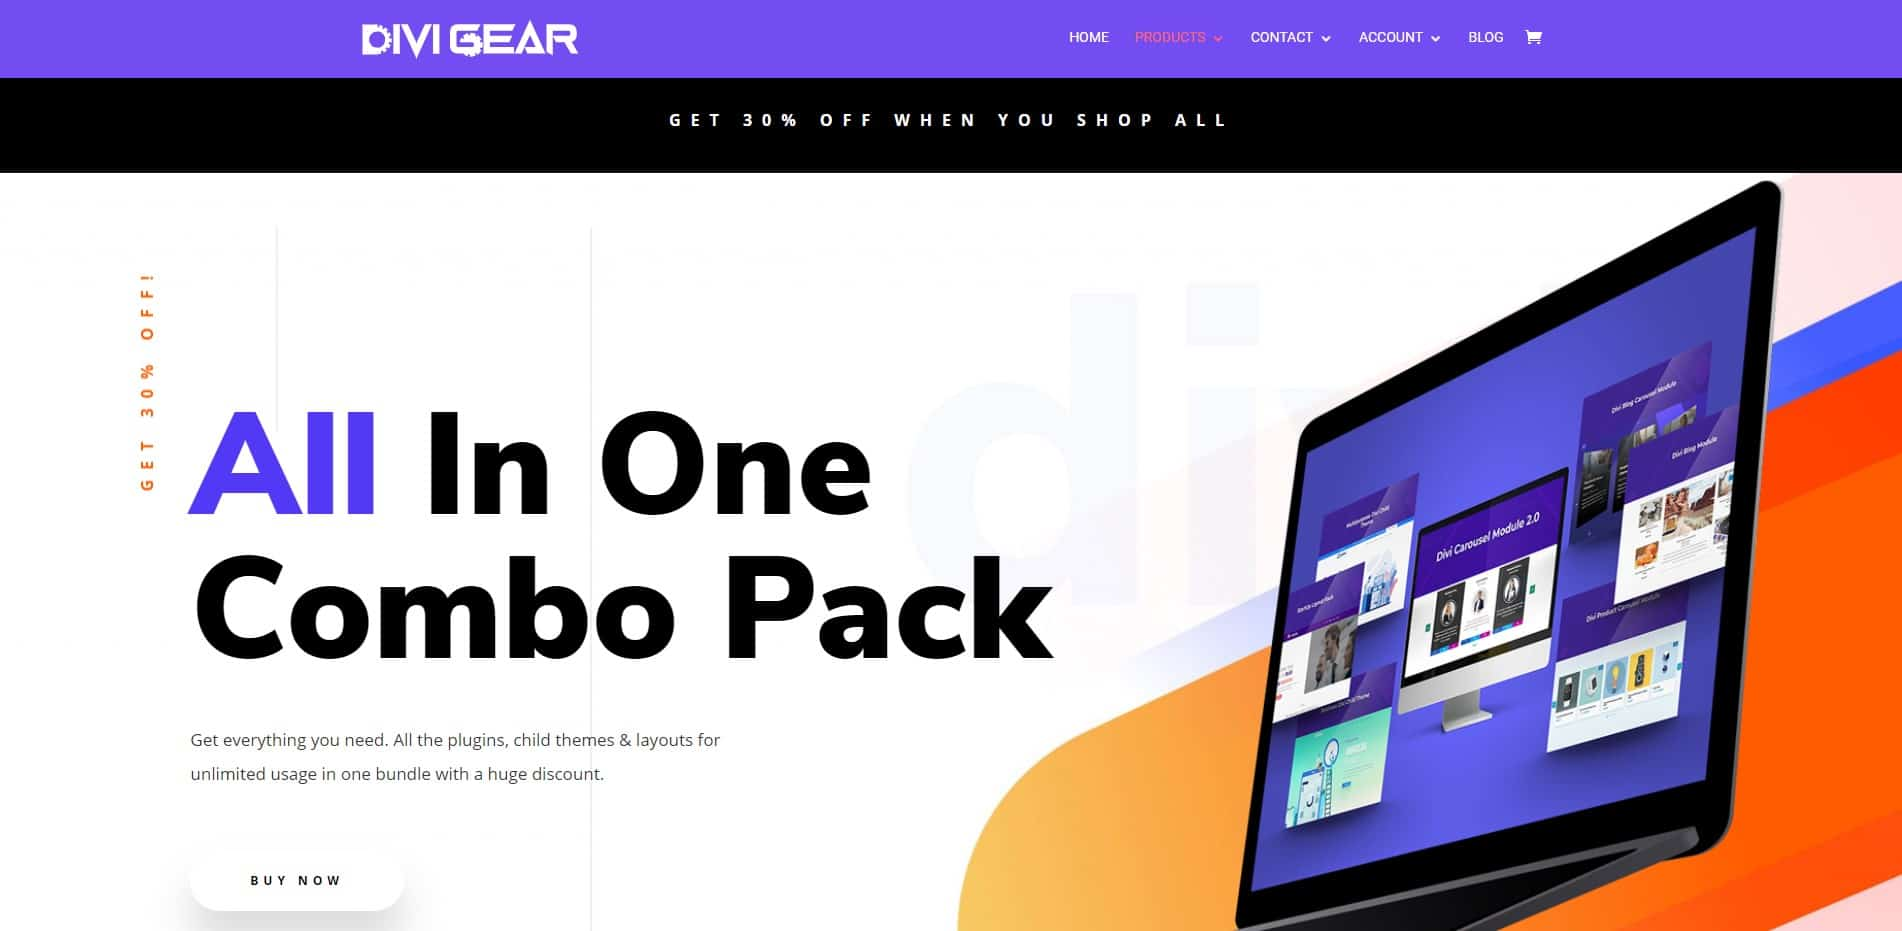 Divi Gear All in combo pack